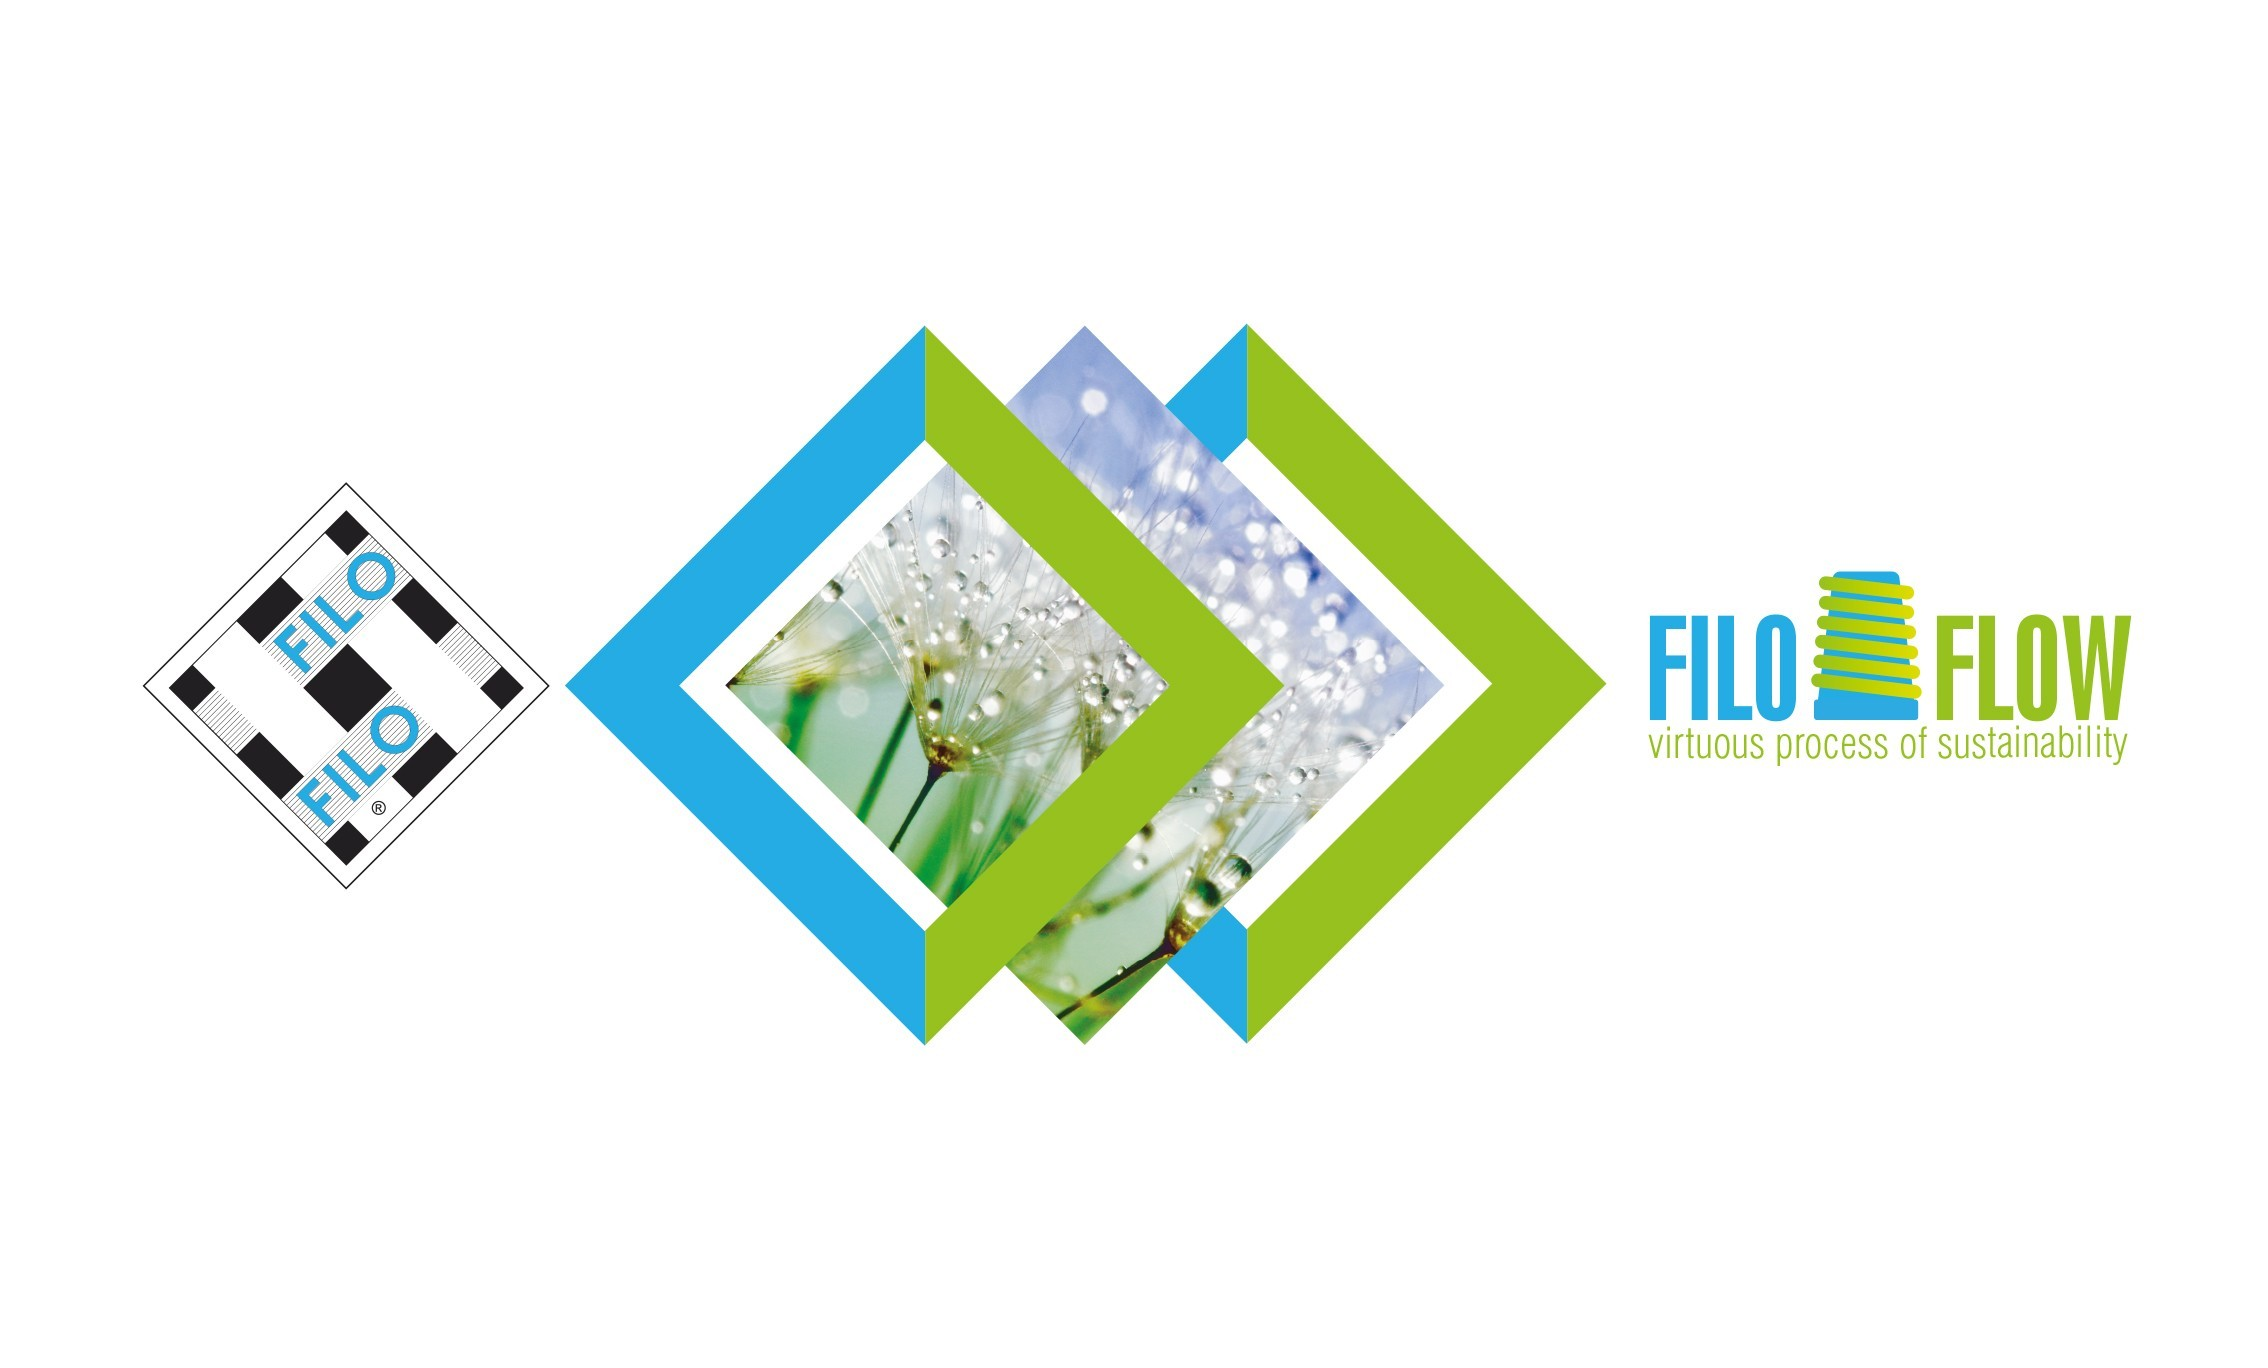 FiloFlow: How To Join The Filo Sustainability Project